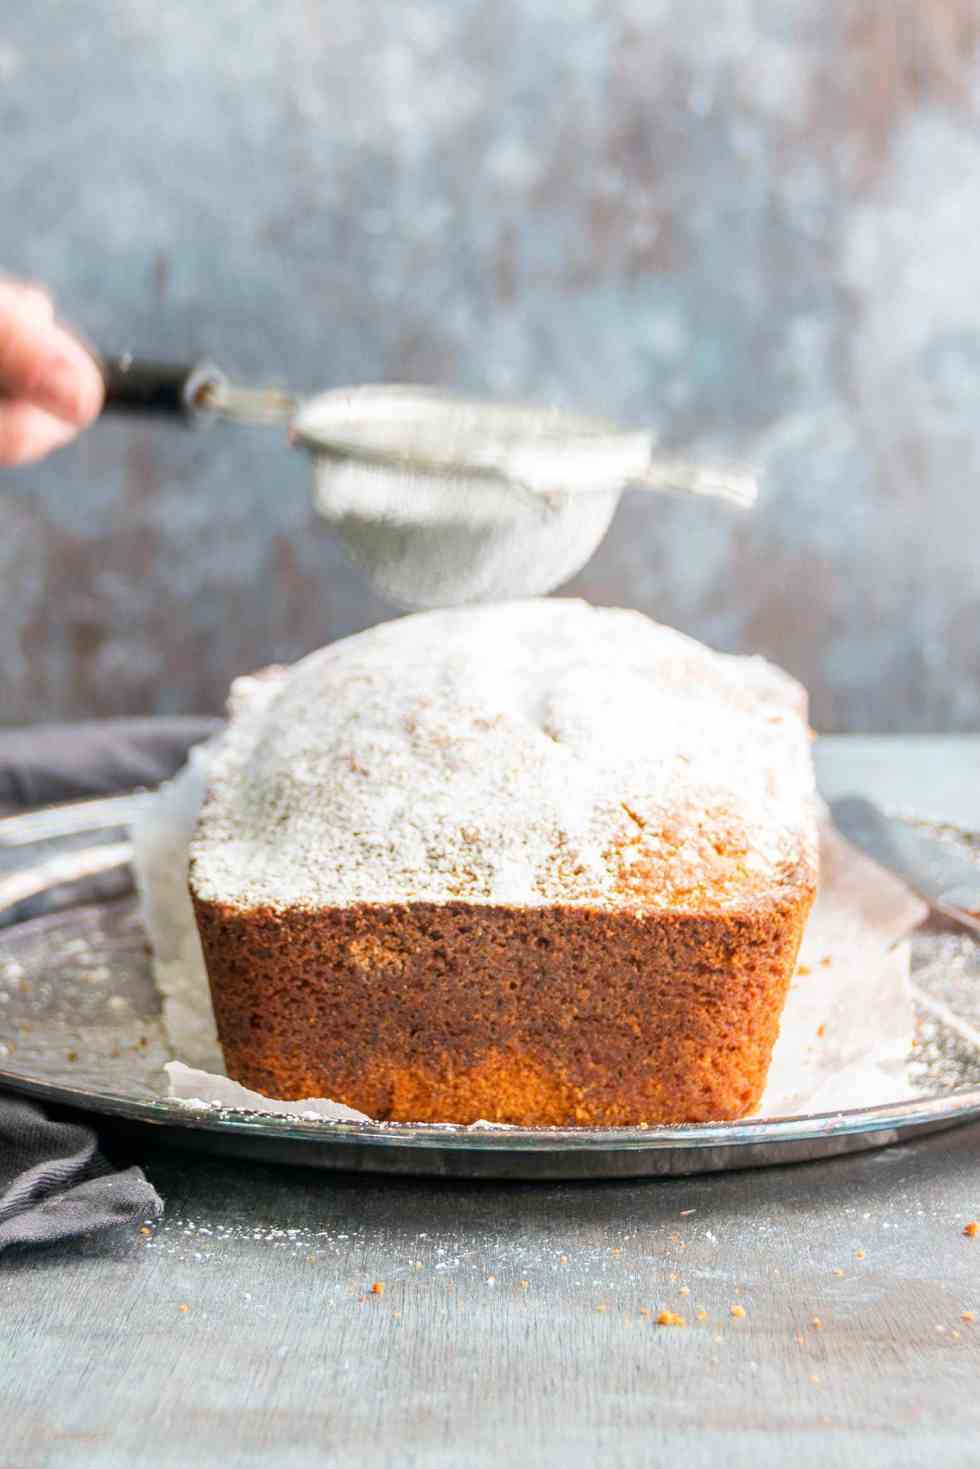 dusting powdered sugar on an autumn spice loaf cake